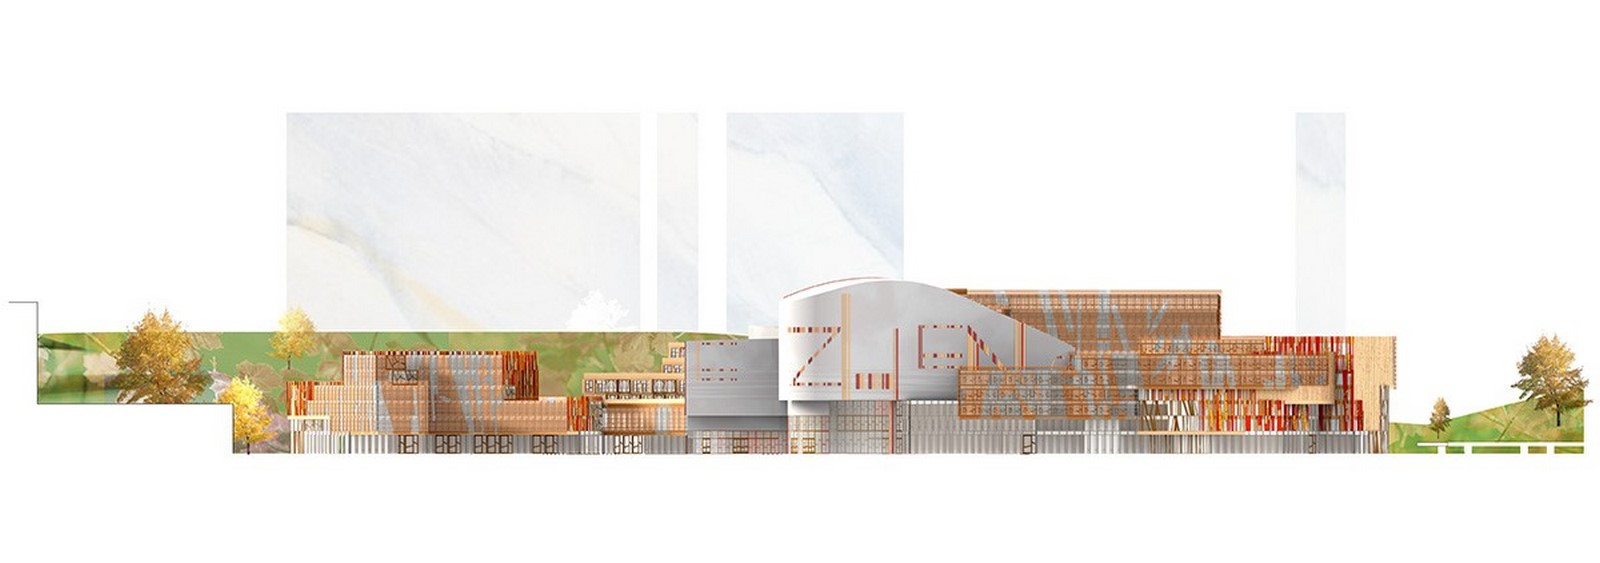 Competition to Design Shenzhen's Conservatory of Music won by Miralles Tagliabue EMBT - Sheet12